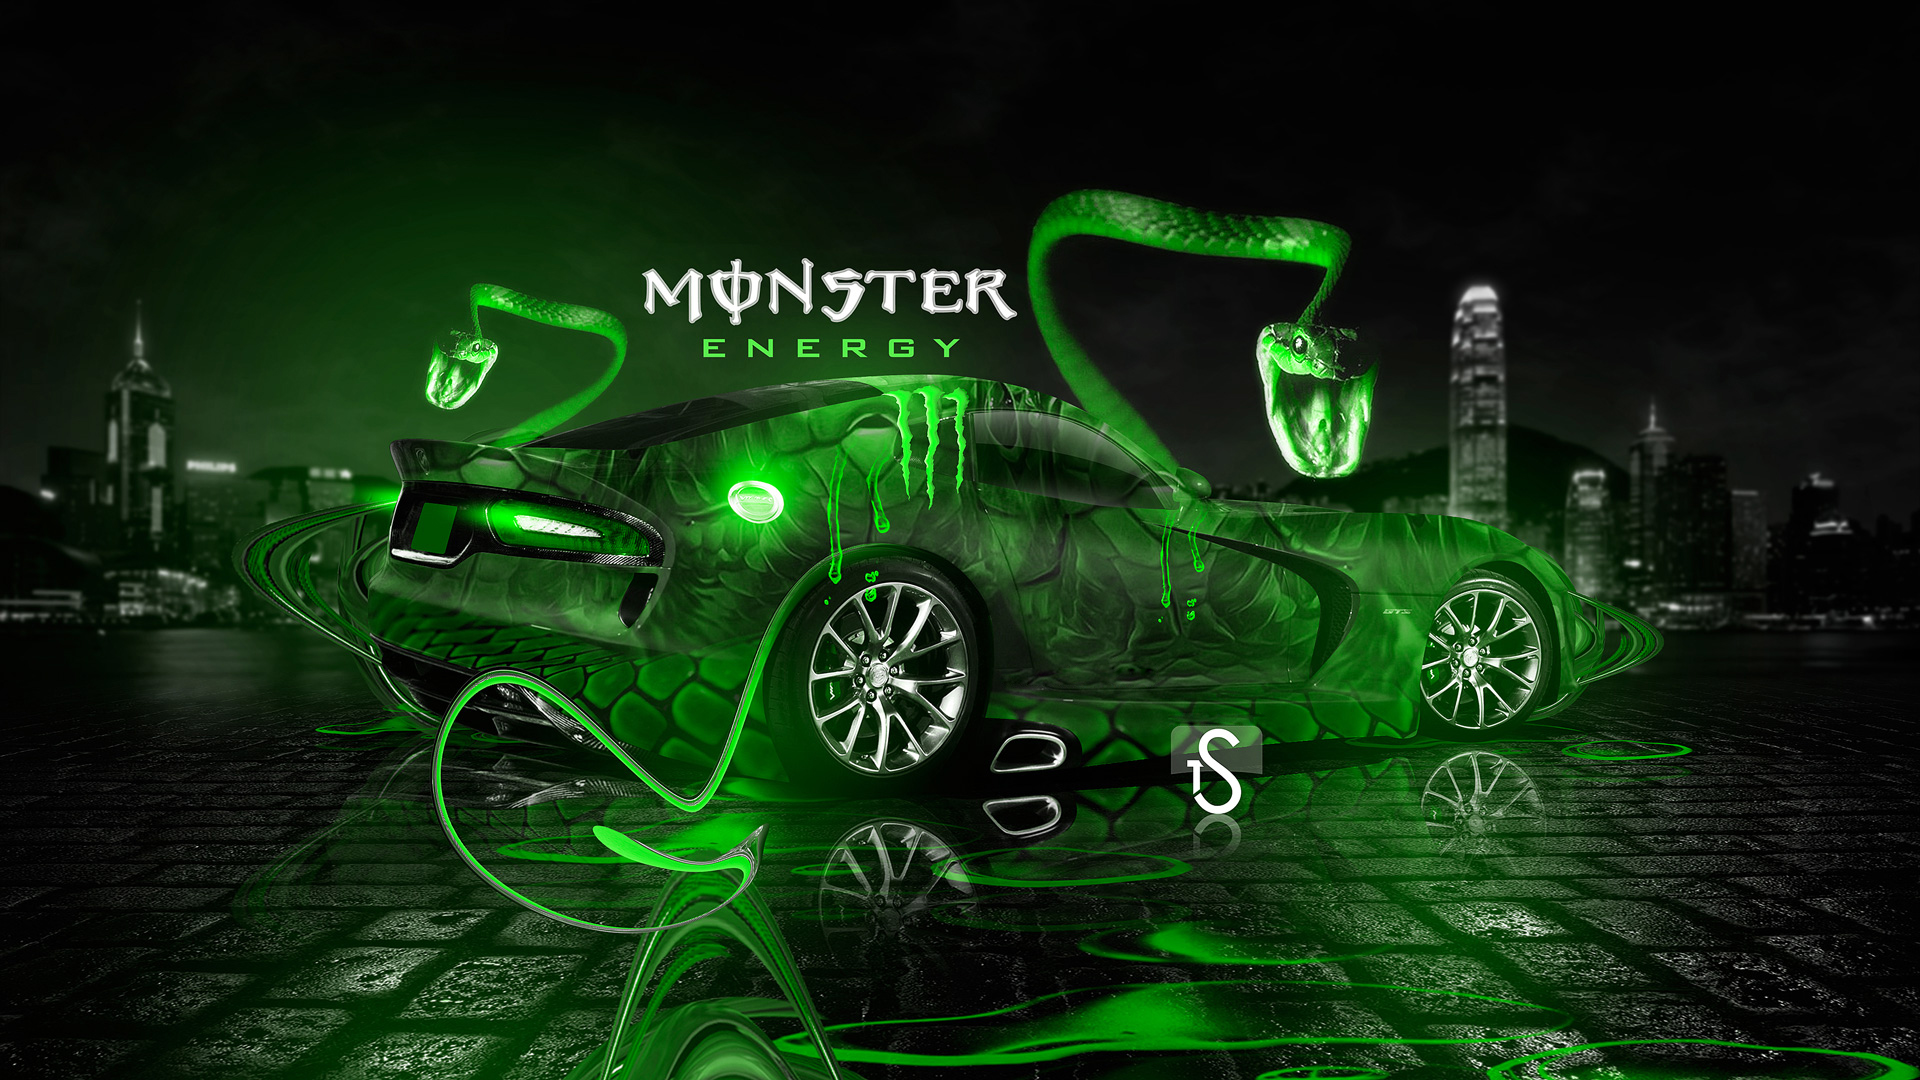 Free-Monster-Adorable-HDQ-Backgrounds-of-Free-Monster-wallpaper-wpc5805104